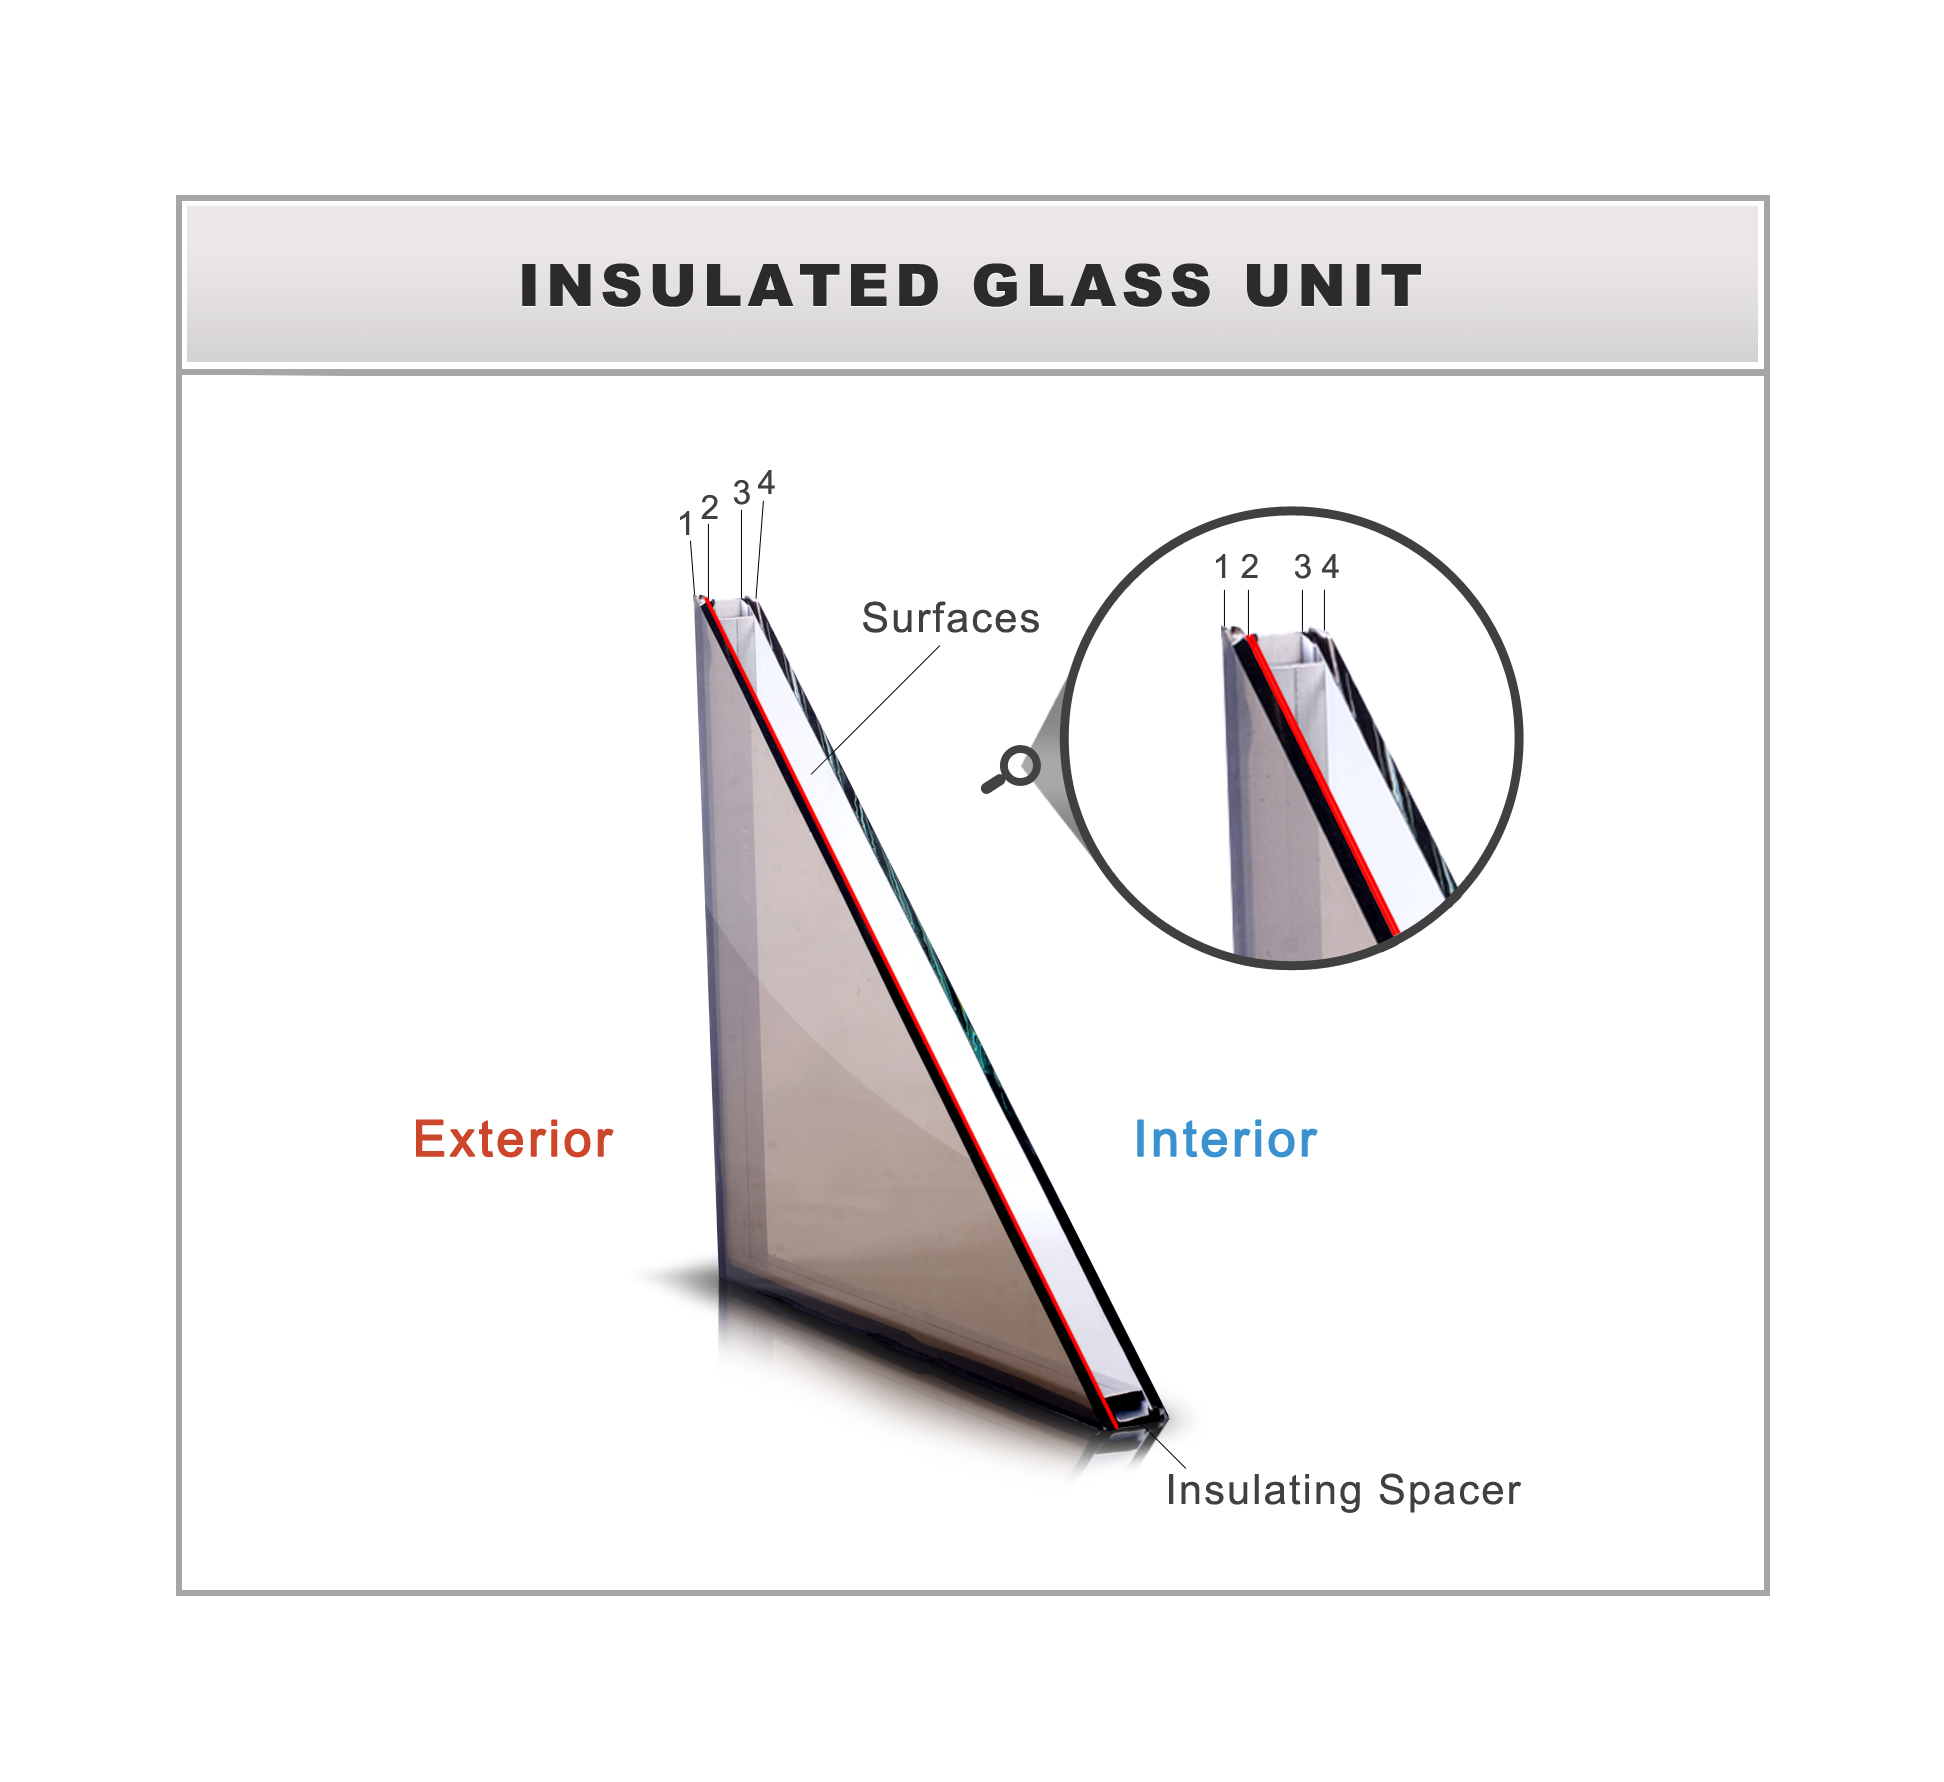 Glazed Insulated Units : Insulated glass manufacturer western states inc